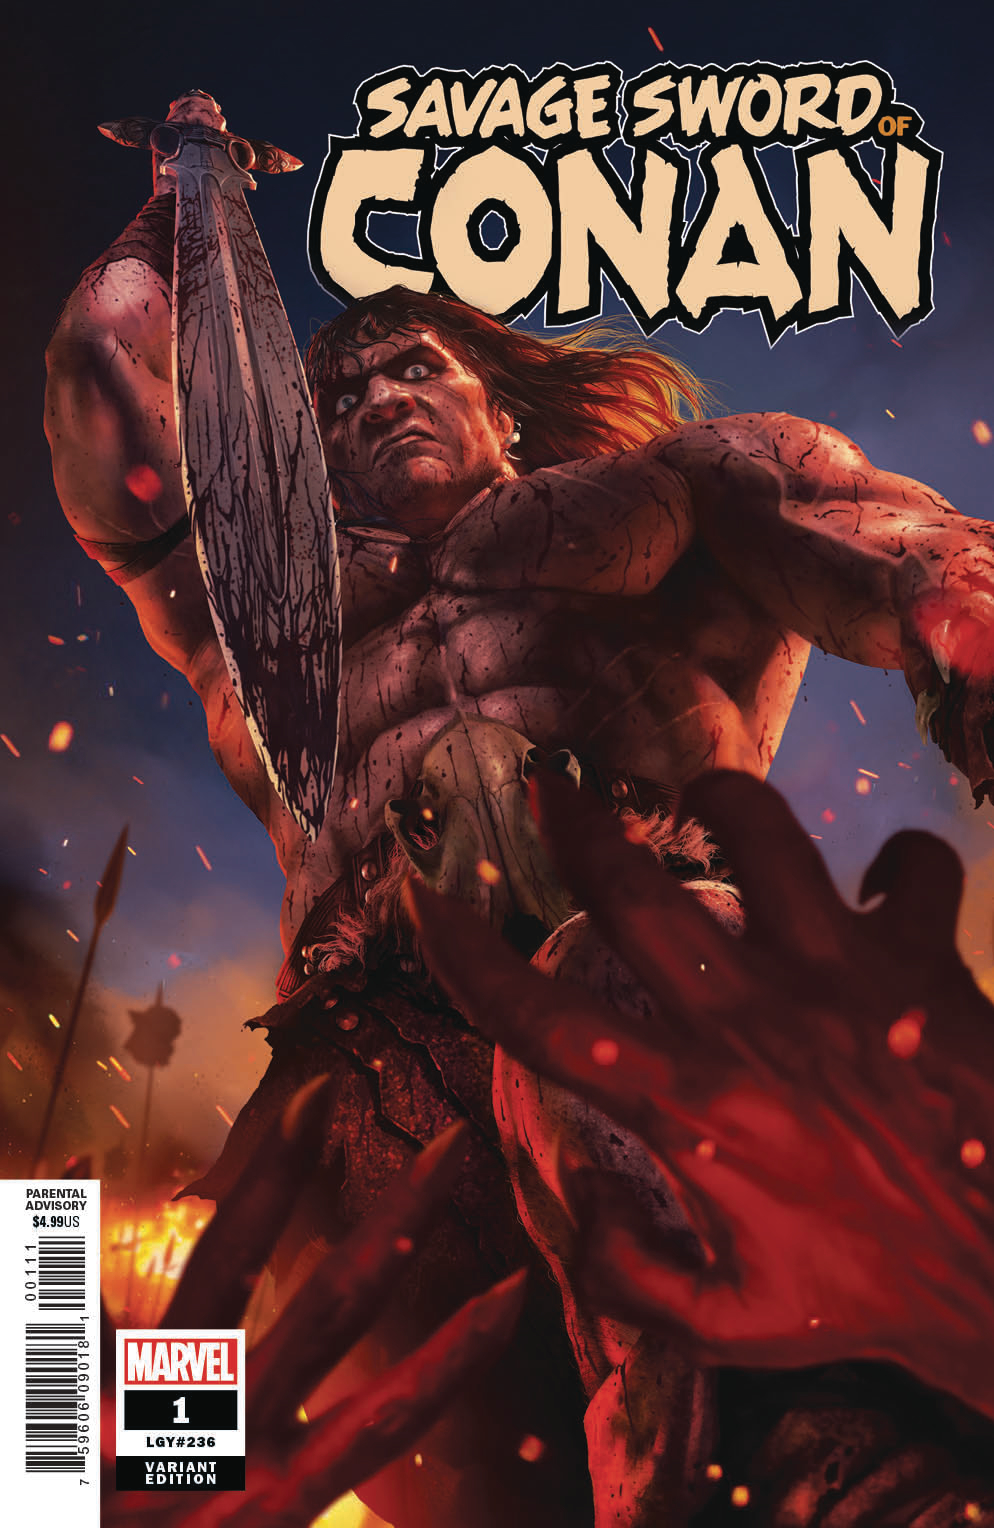 SAVAGE SWORD OF CONAN #1 RAHZZAH VAR